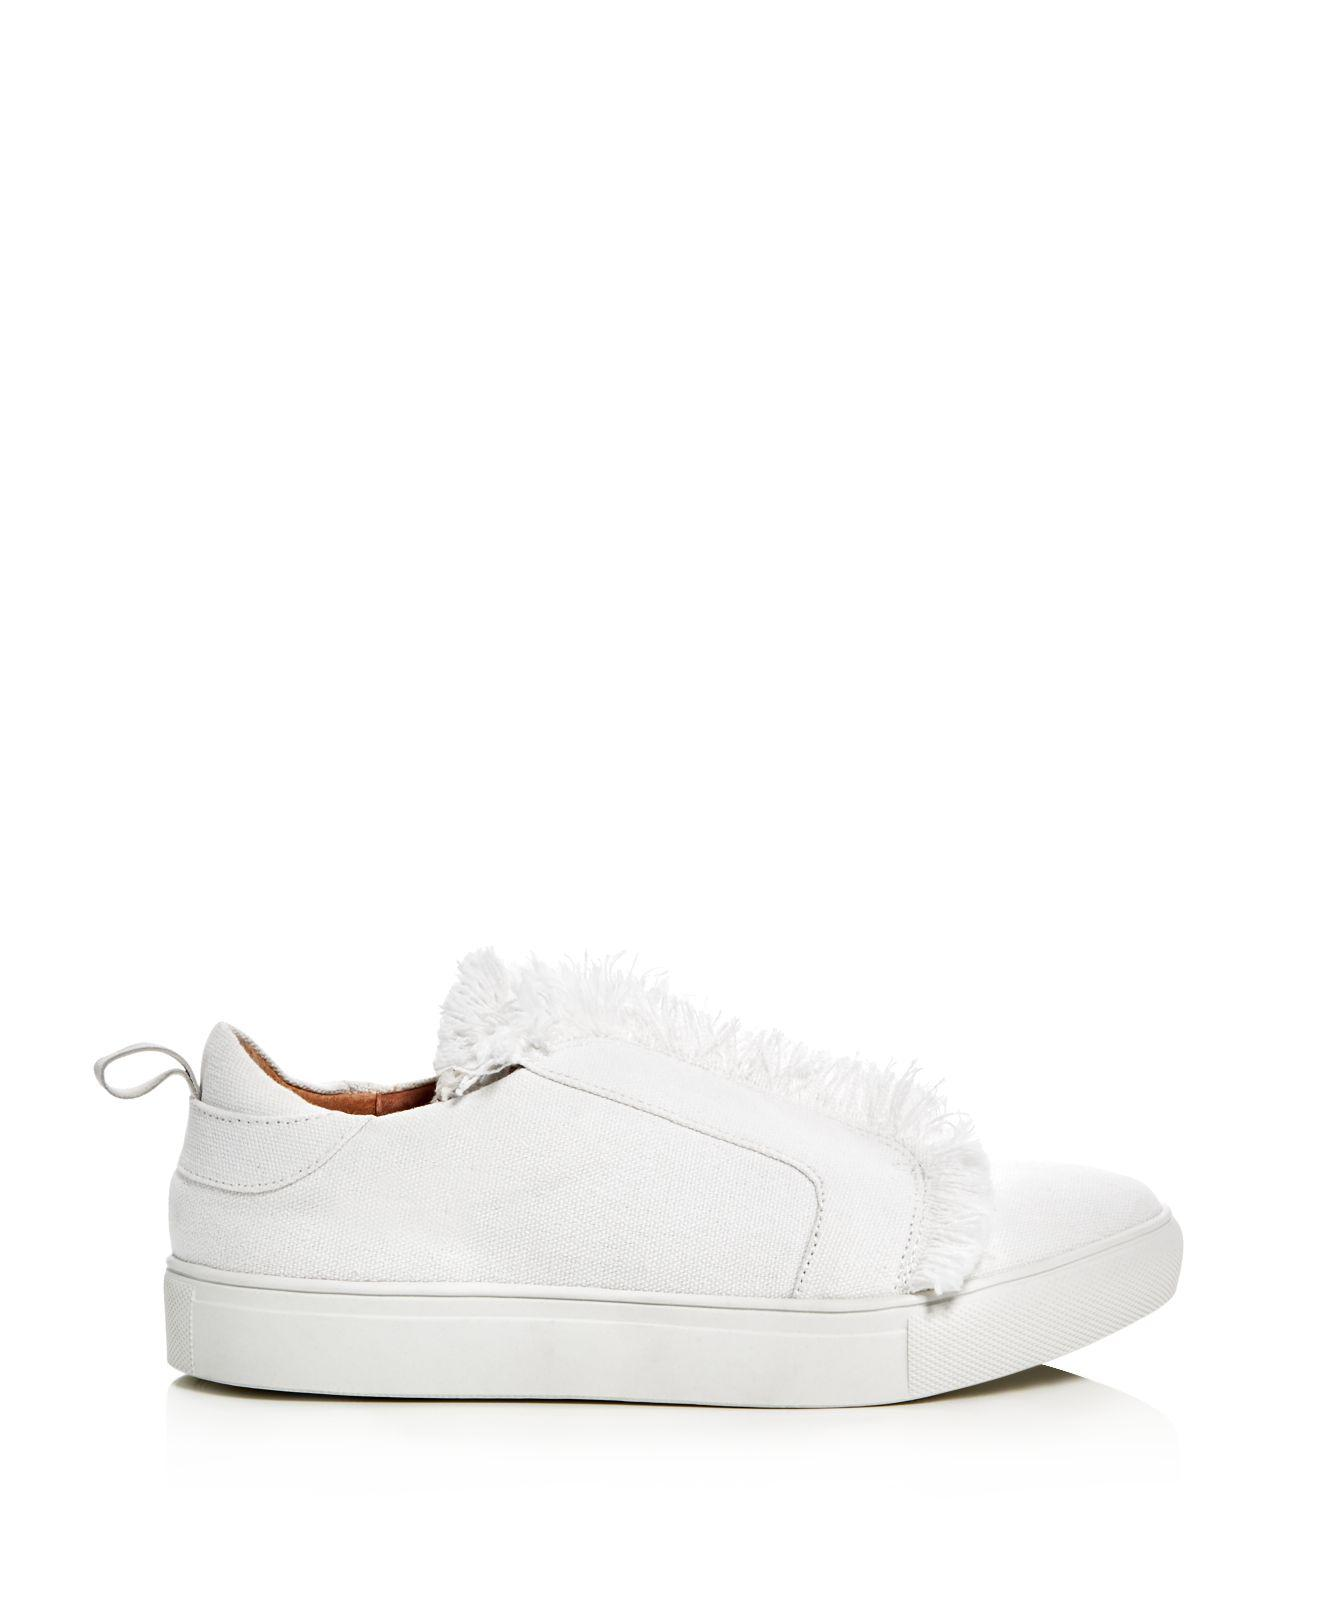 Jaggar Frayed Slip-on Sneakers in Chalk (White)